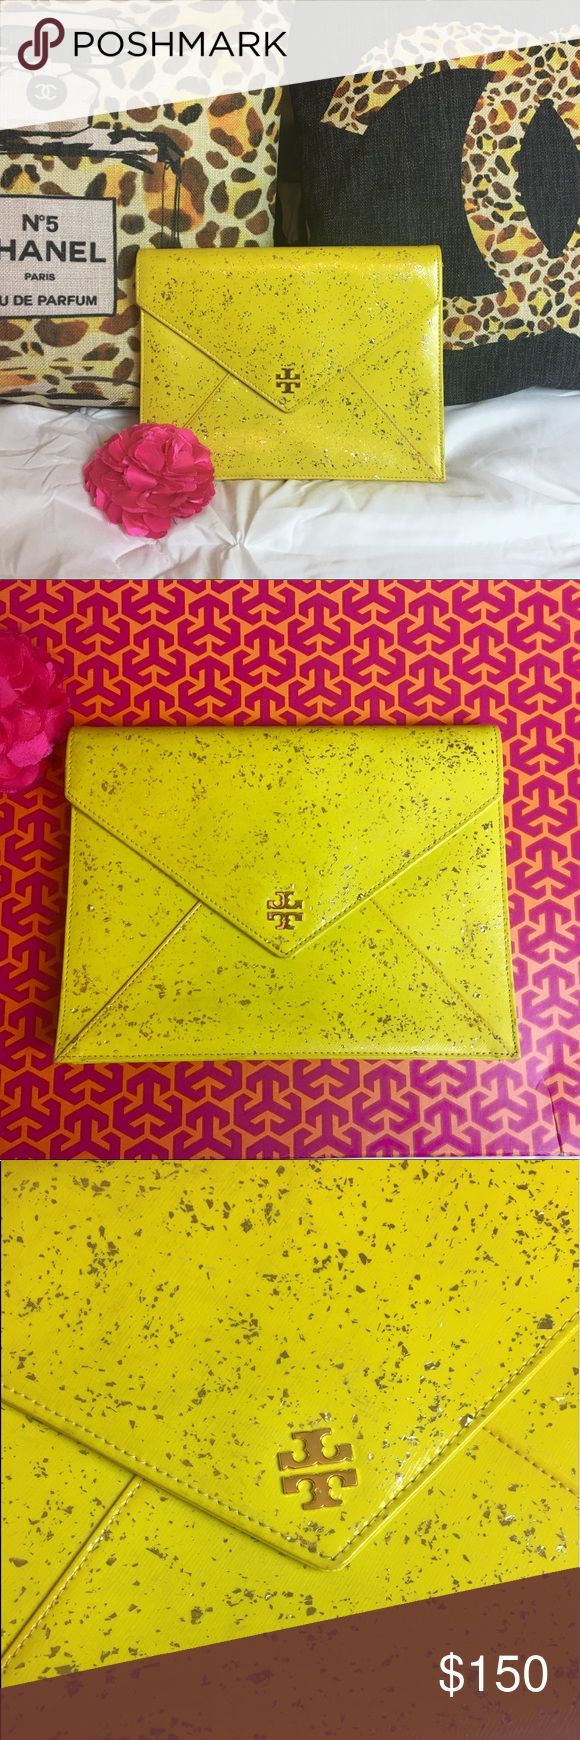 TORY BURCH Neon Yellow Clutch Gorgeous envelope clutch with metallic splatter details. Great preowned condition Tory Burch Bags Clutches & Wristlets